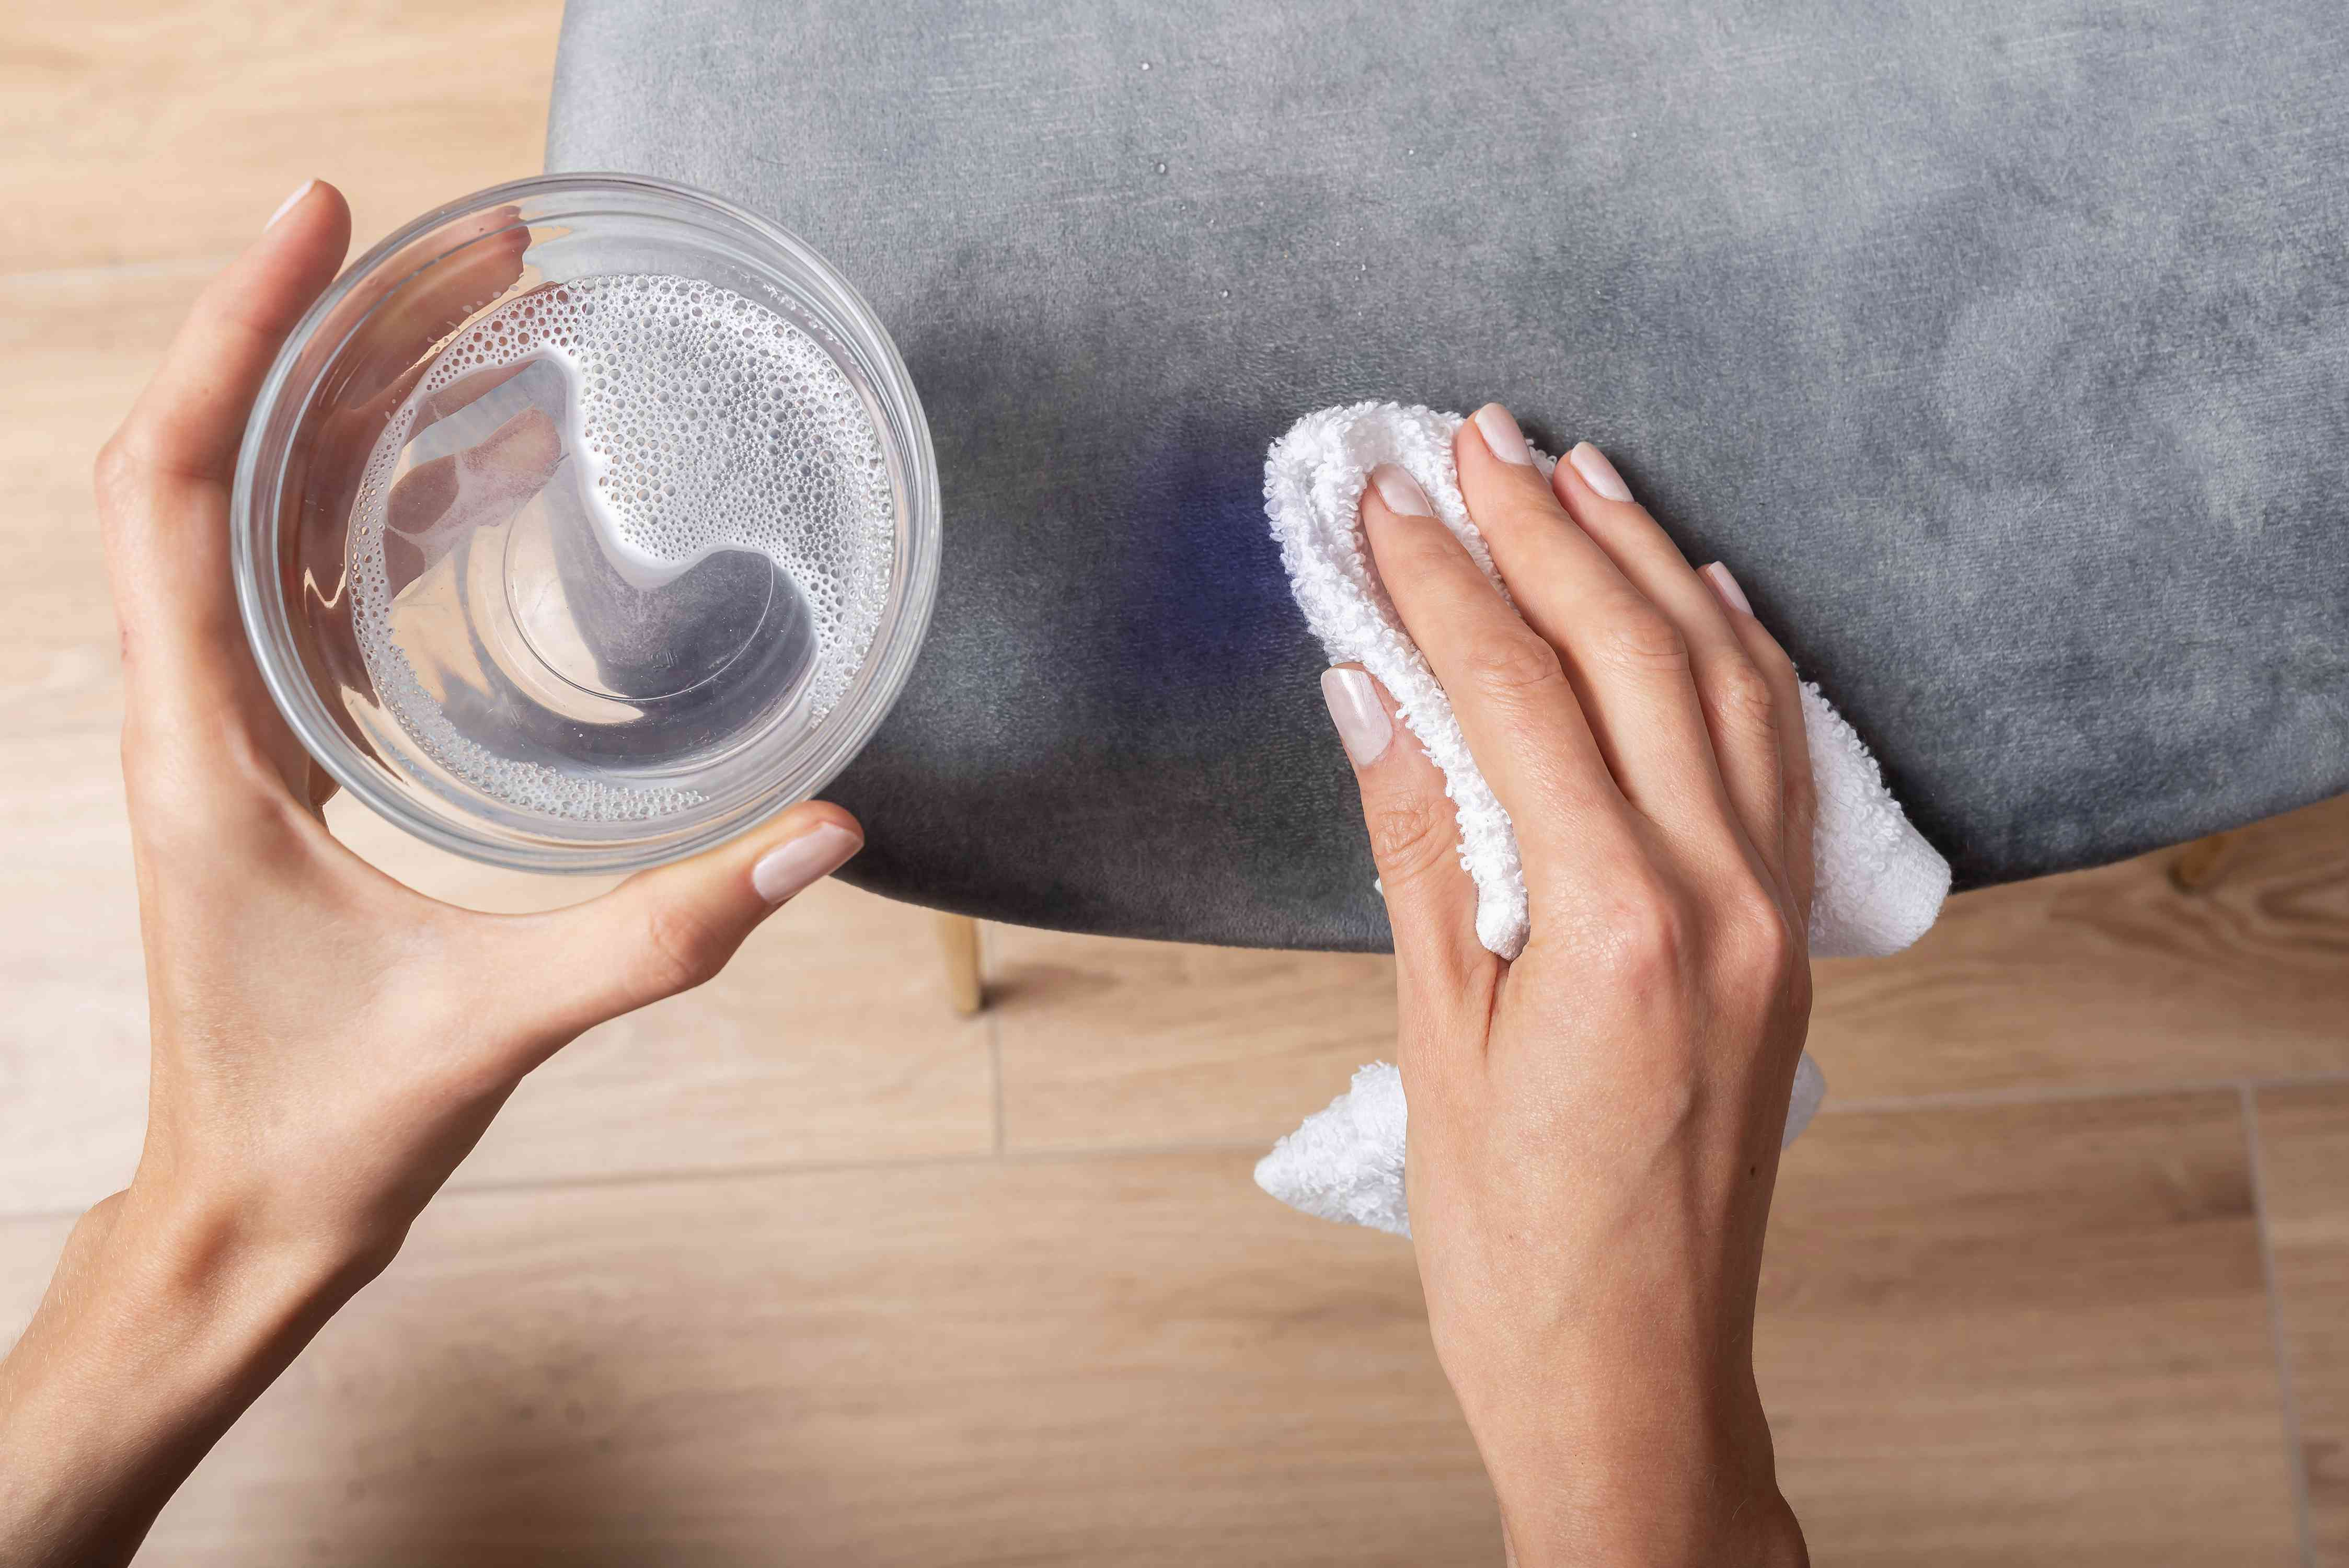 cleaning upholstery with an oxygen based bleach solution